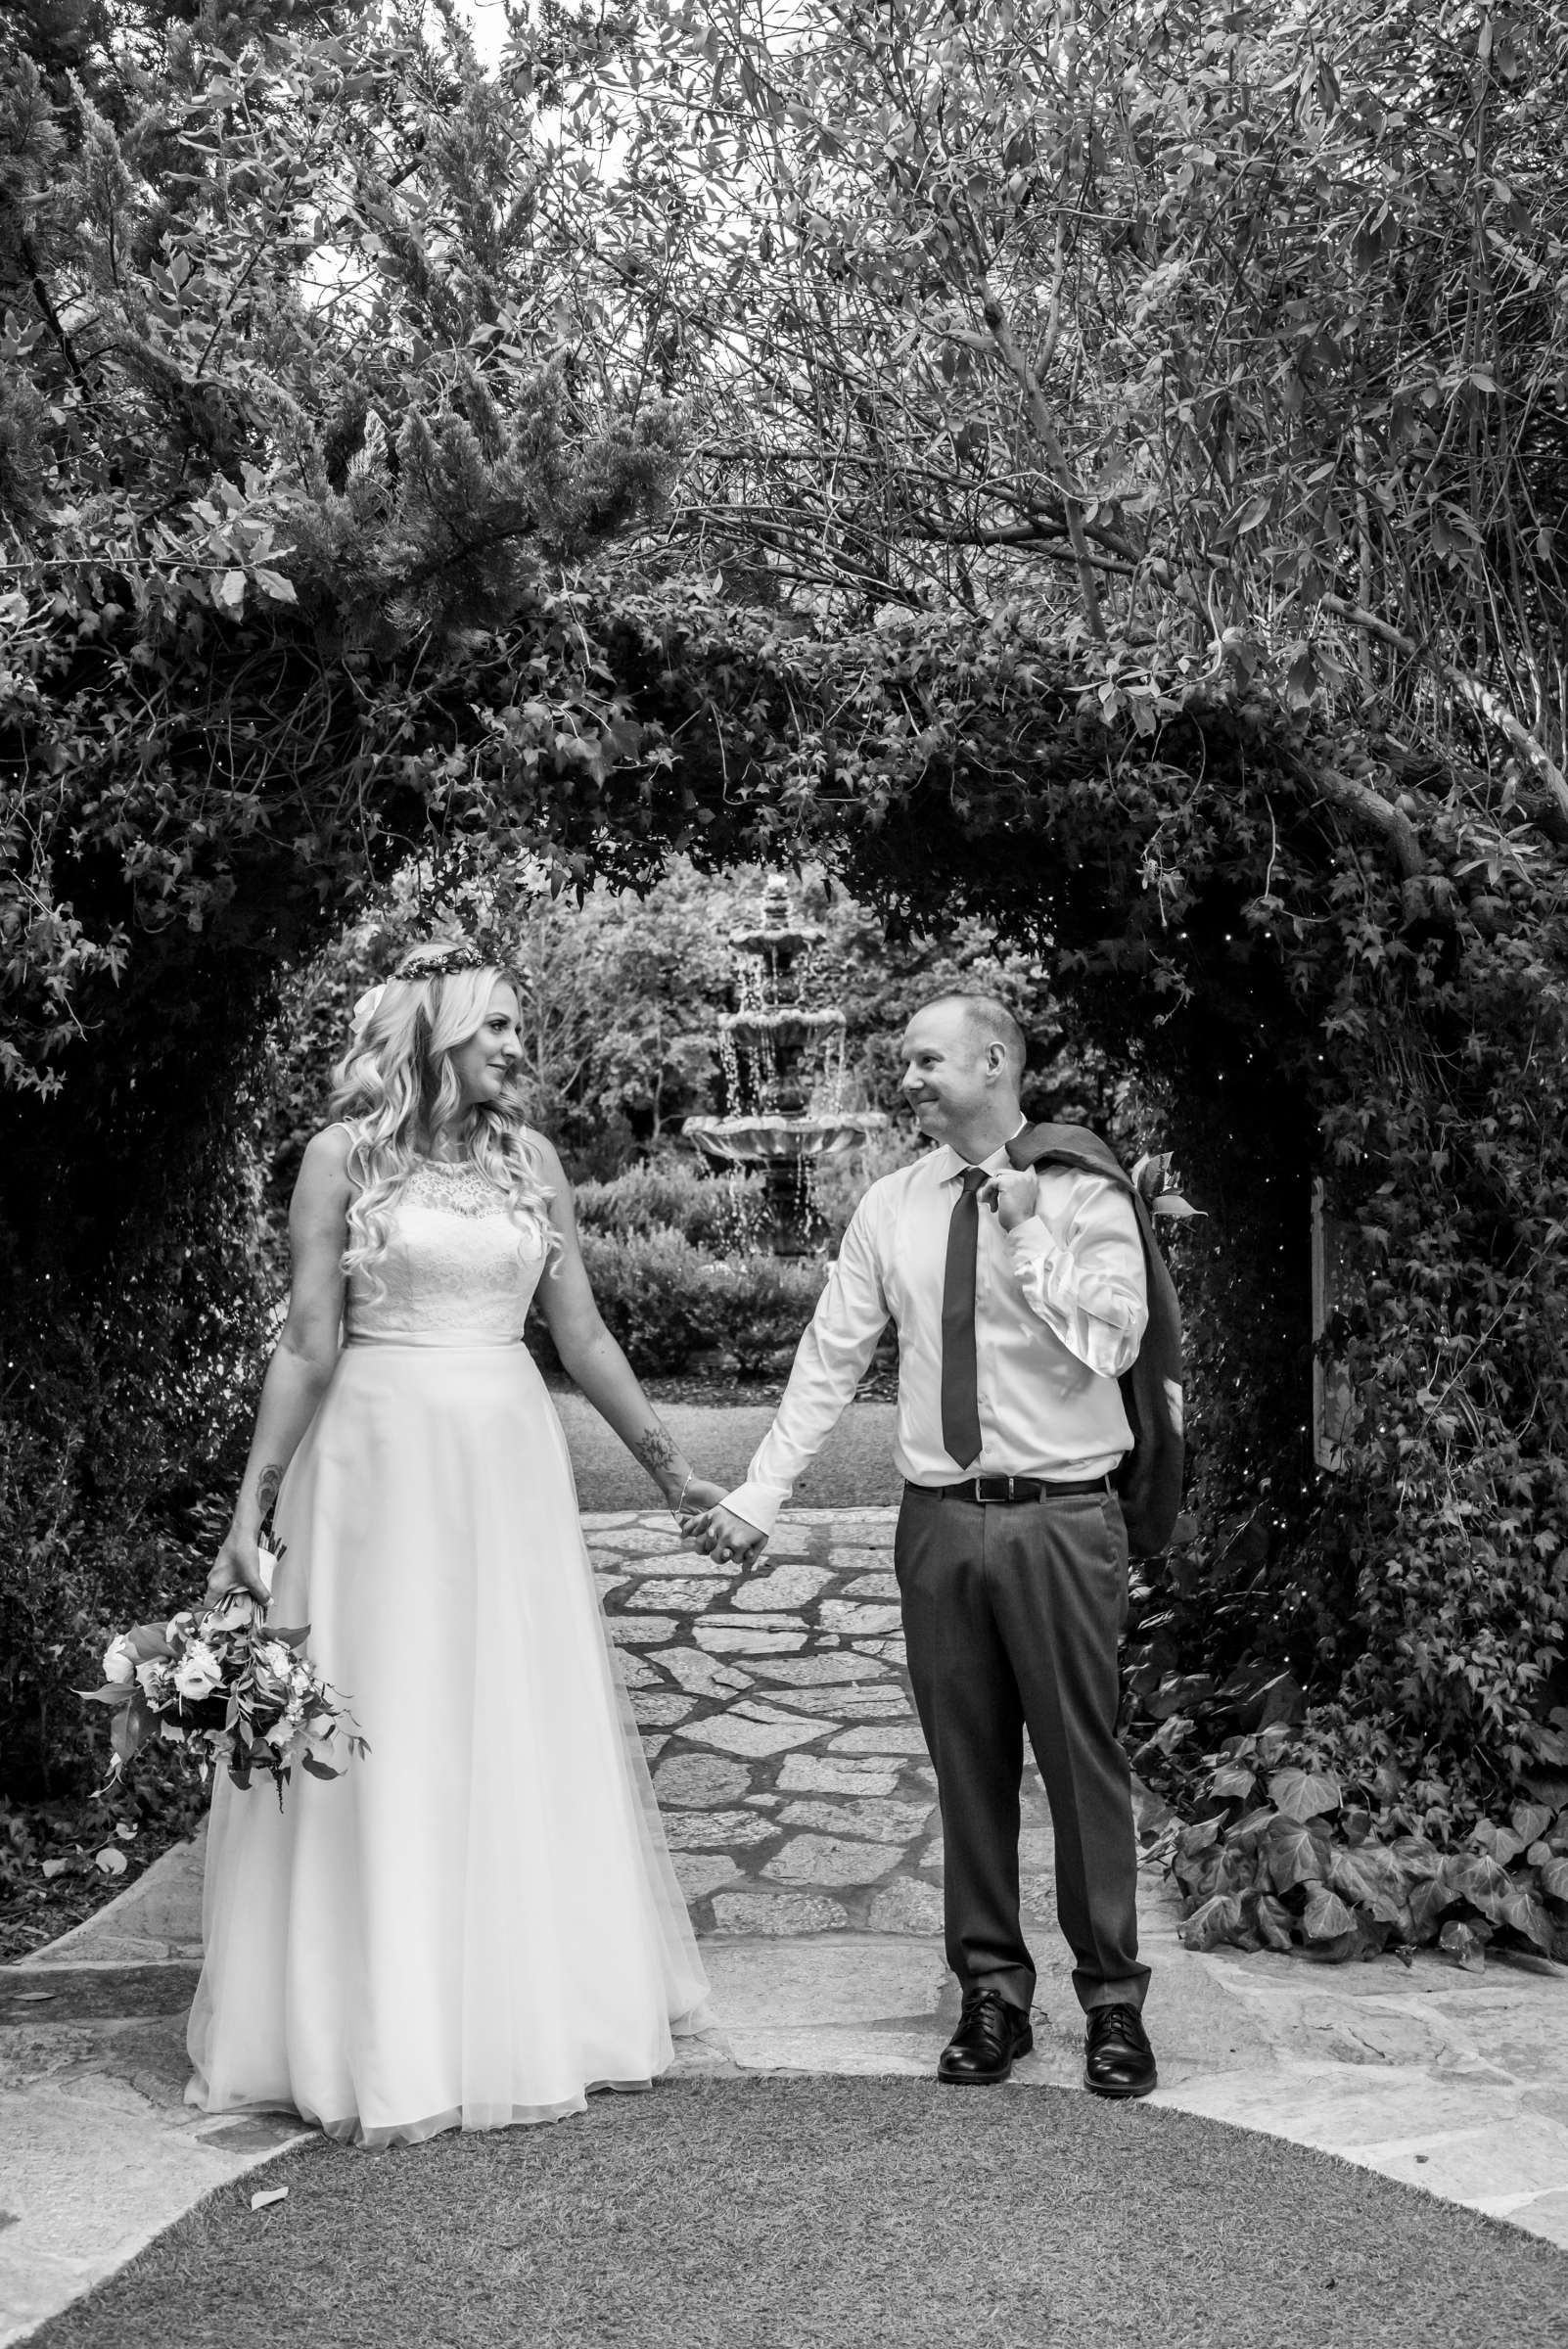 Twin Oaks House & Gardens Wedding Estate Wedding, Brittany and Sean Wedding Photo #33 by True Photography